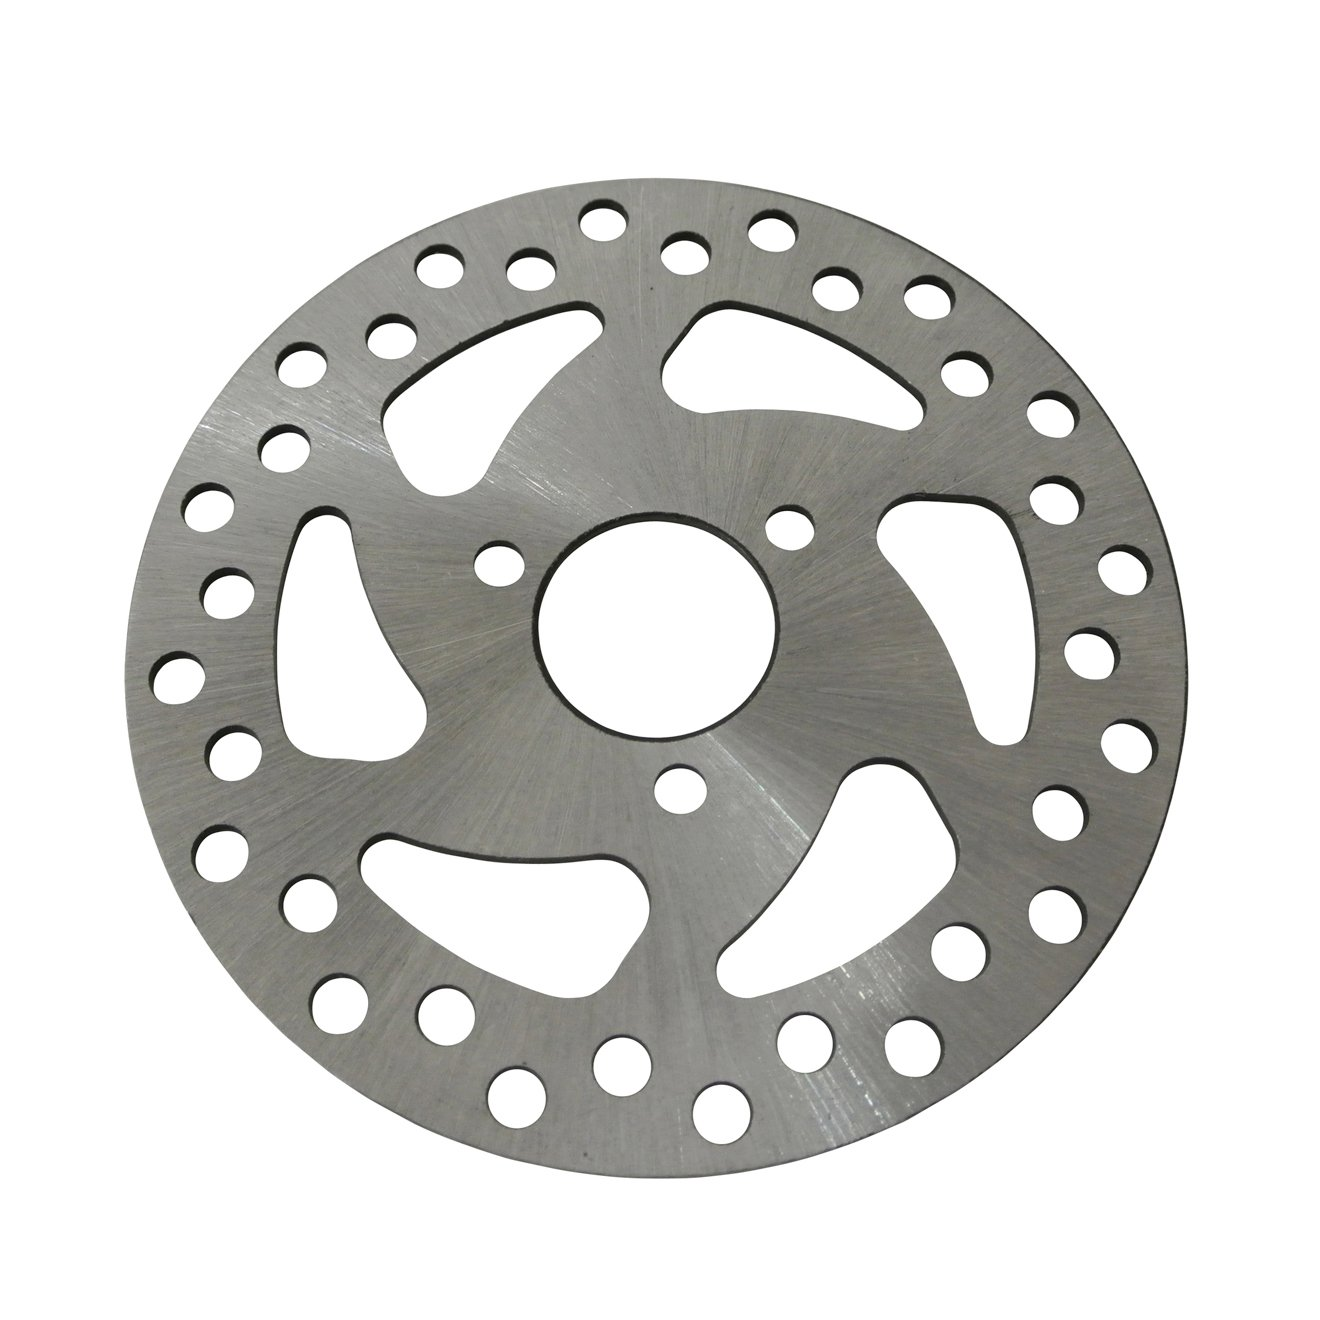 Sthus Brake Disc Rotor For Pocket bike Chopper Scooters Part 120mm